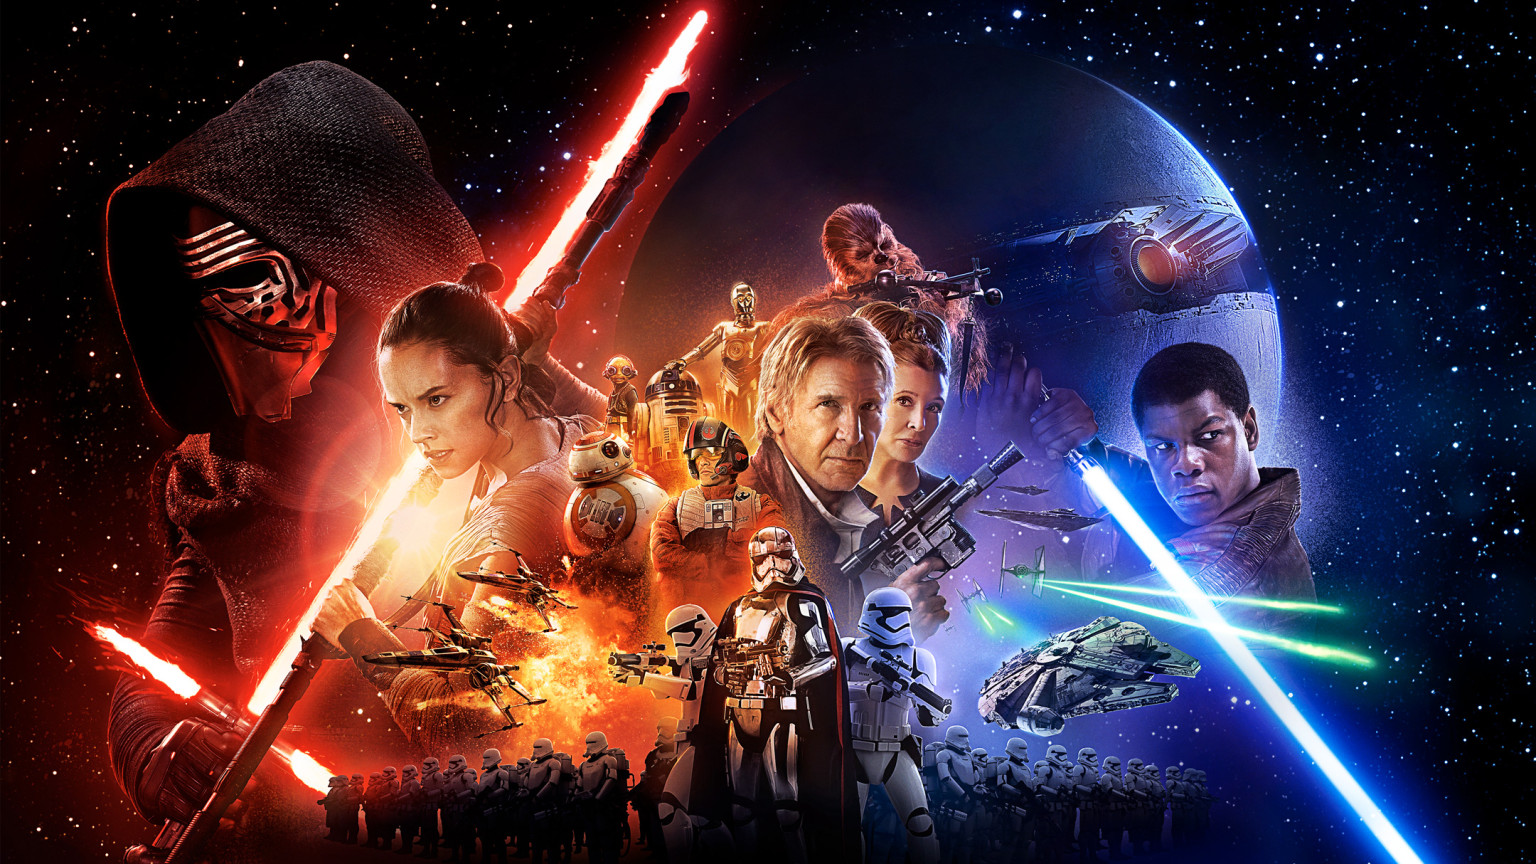 Photo of Is 'Star Wars: The Force Awakens' suitable for young kids? (Here's your spoiler-free answer)